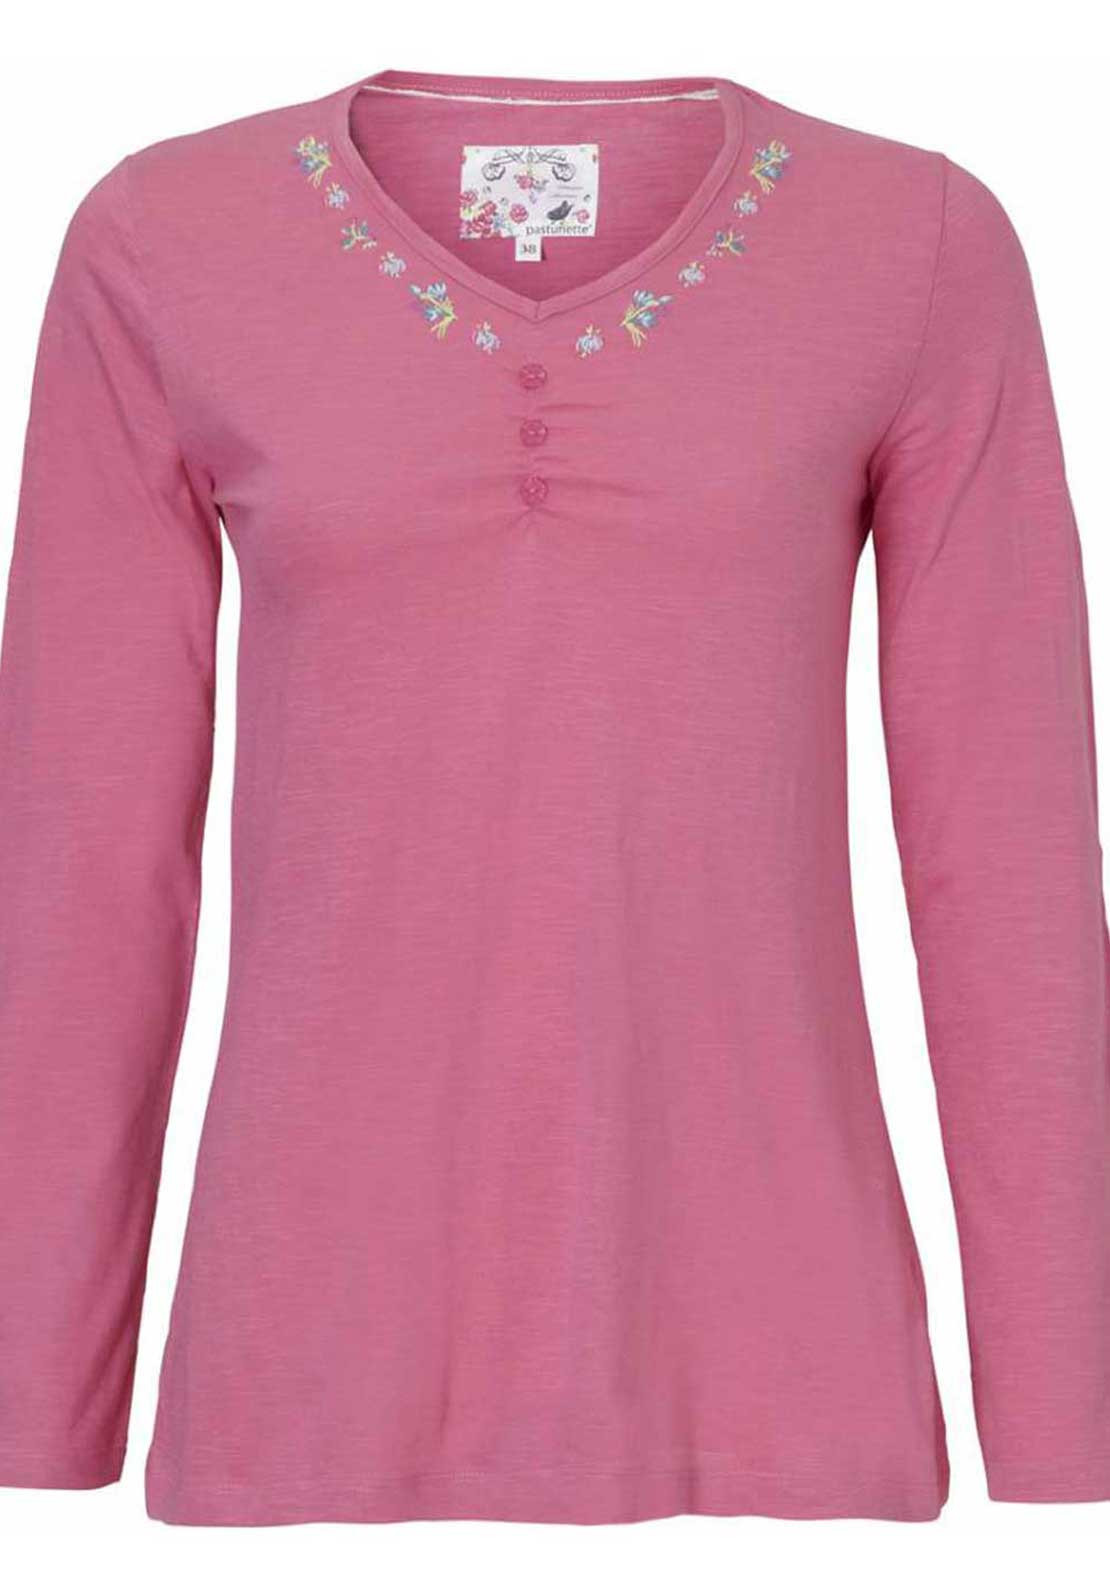 Pastunette Embroidered Floral Print Long Sleeve Pyjama Top, Pink